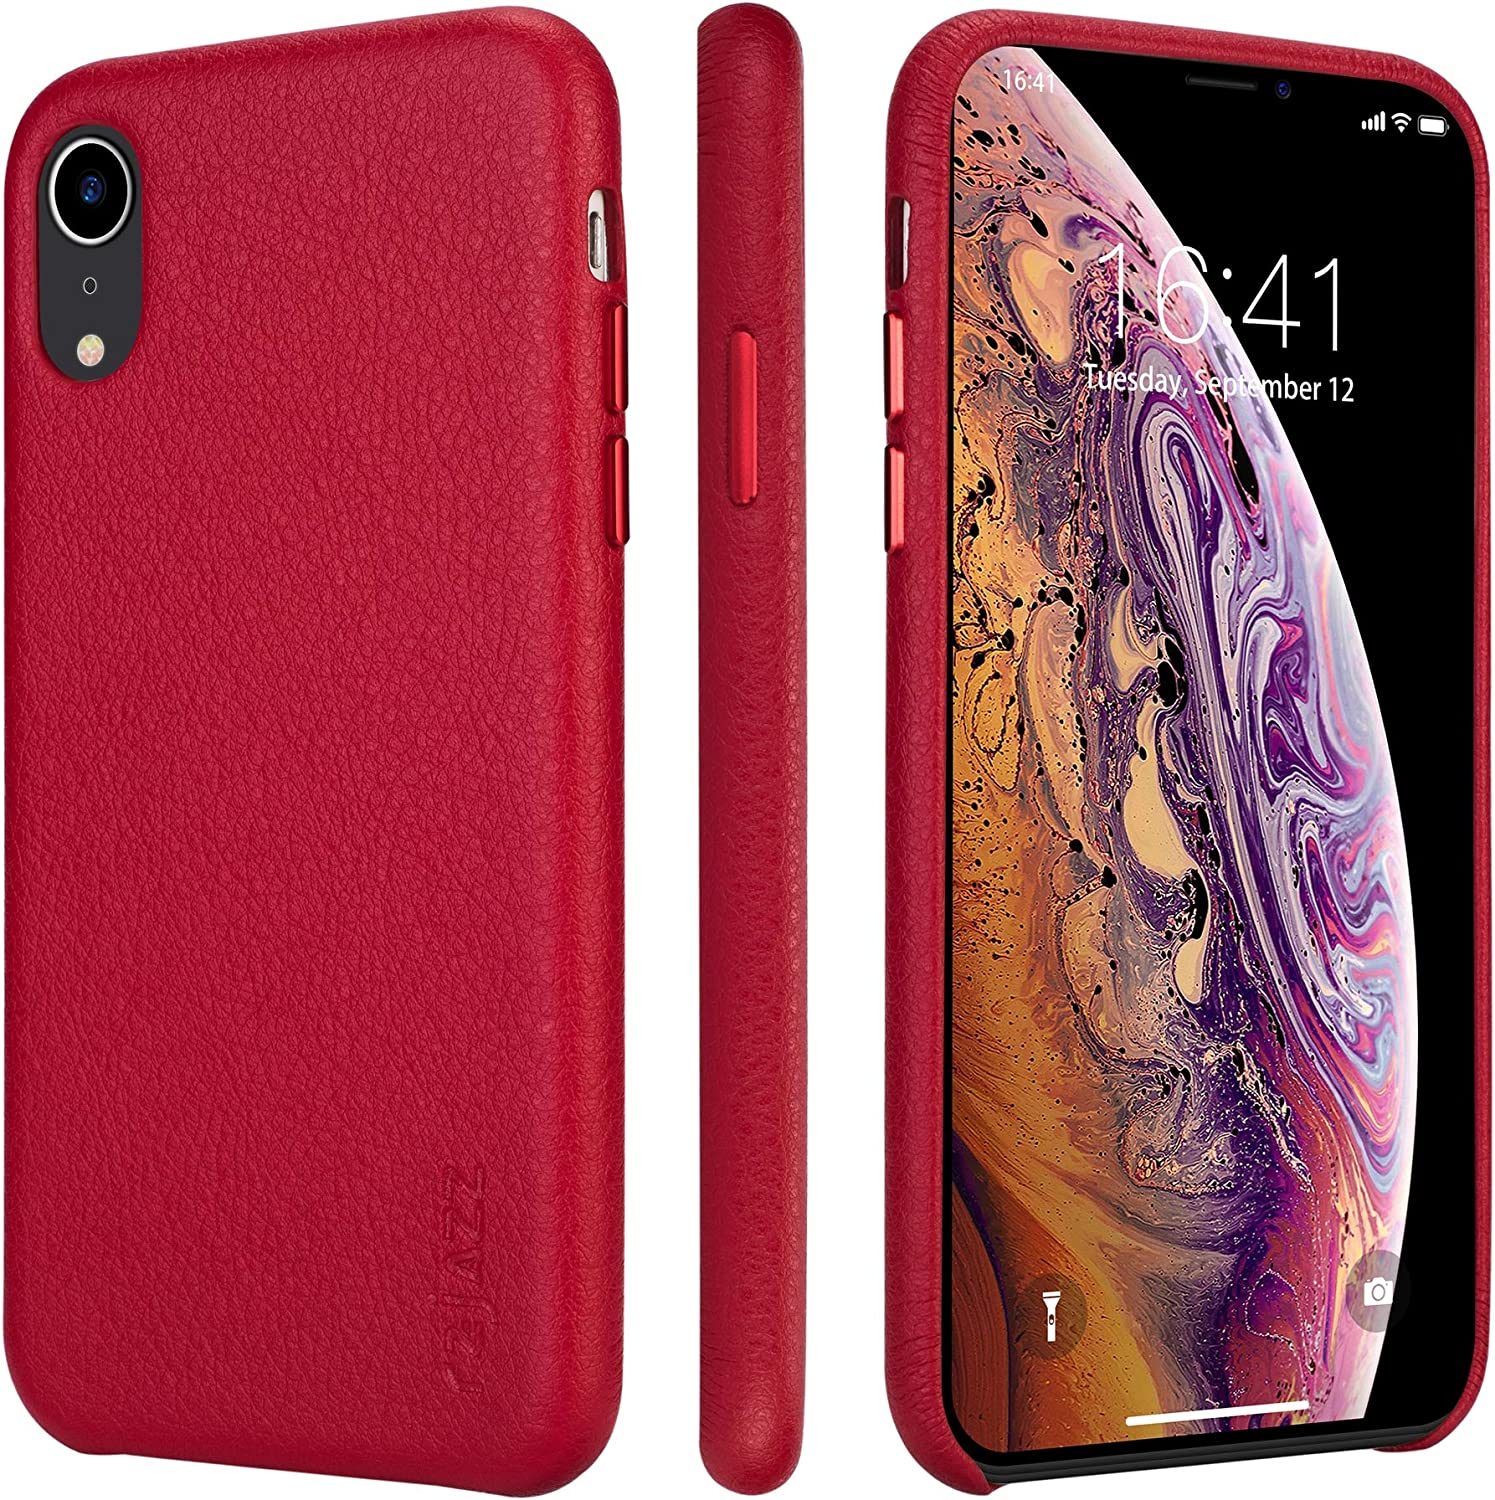 rejazz iPhone xr Case Anti-Scratch iPhone xr Cover Genuine Leather Apple iPhone Cases for iPhone xr (6.1 Inch)(Red)